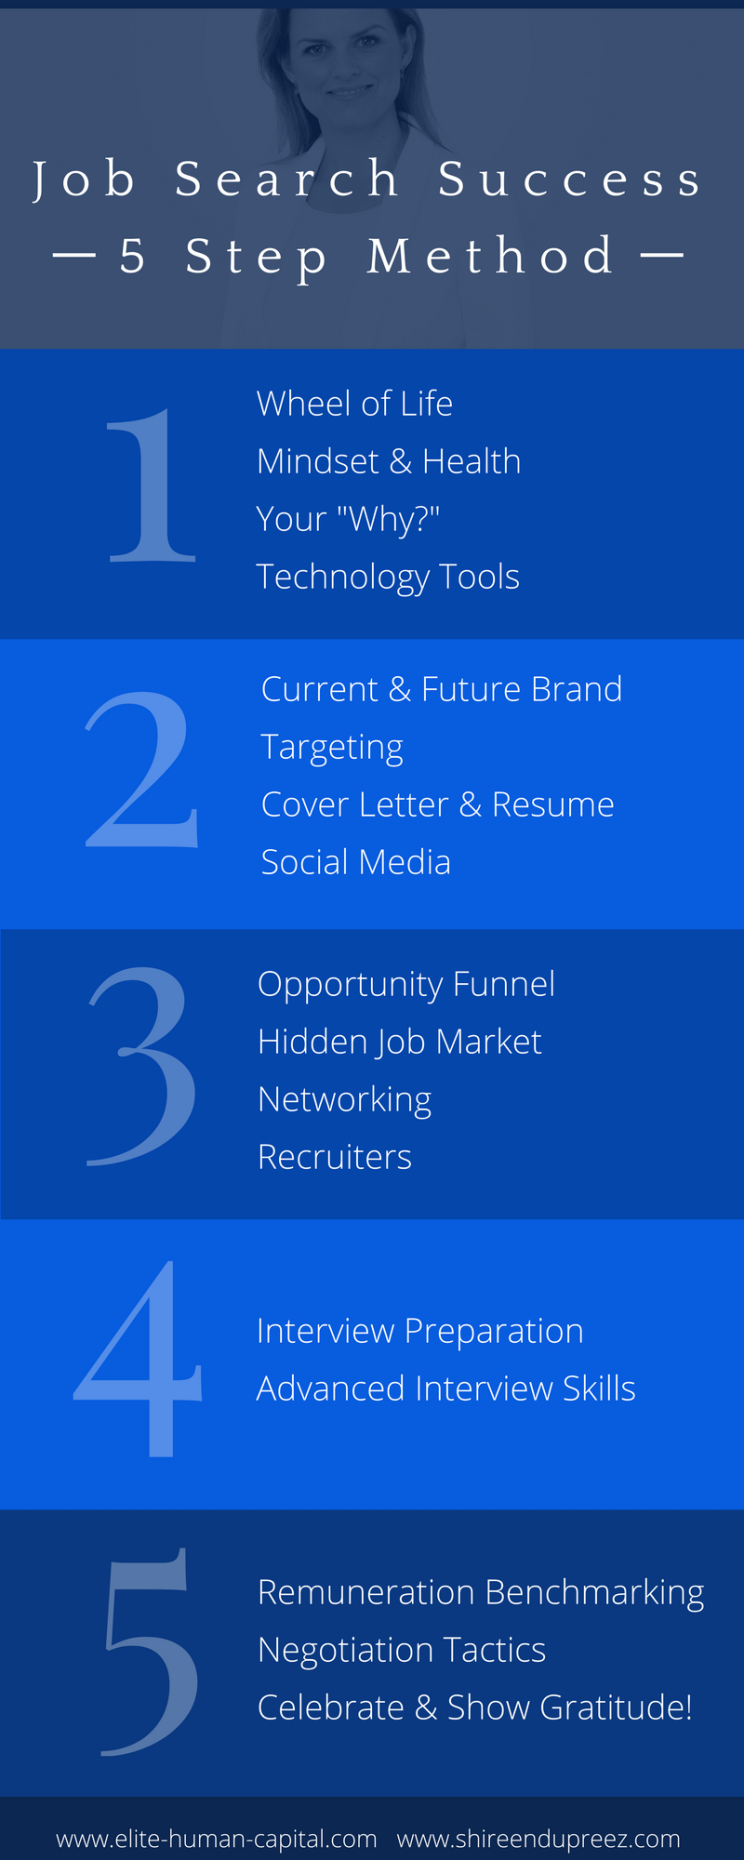 Job Search Success - 5 Step Method - Infographic.png